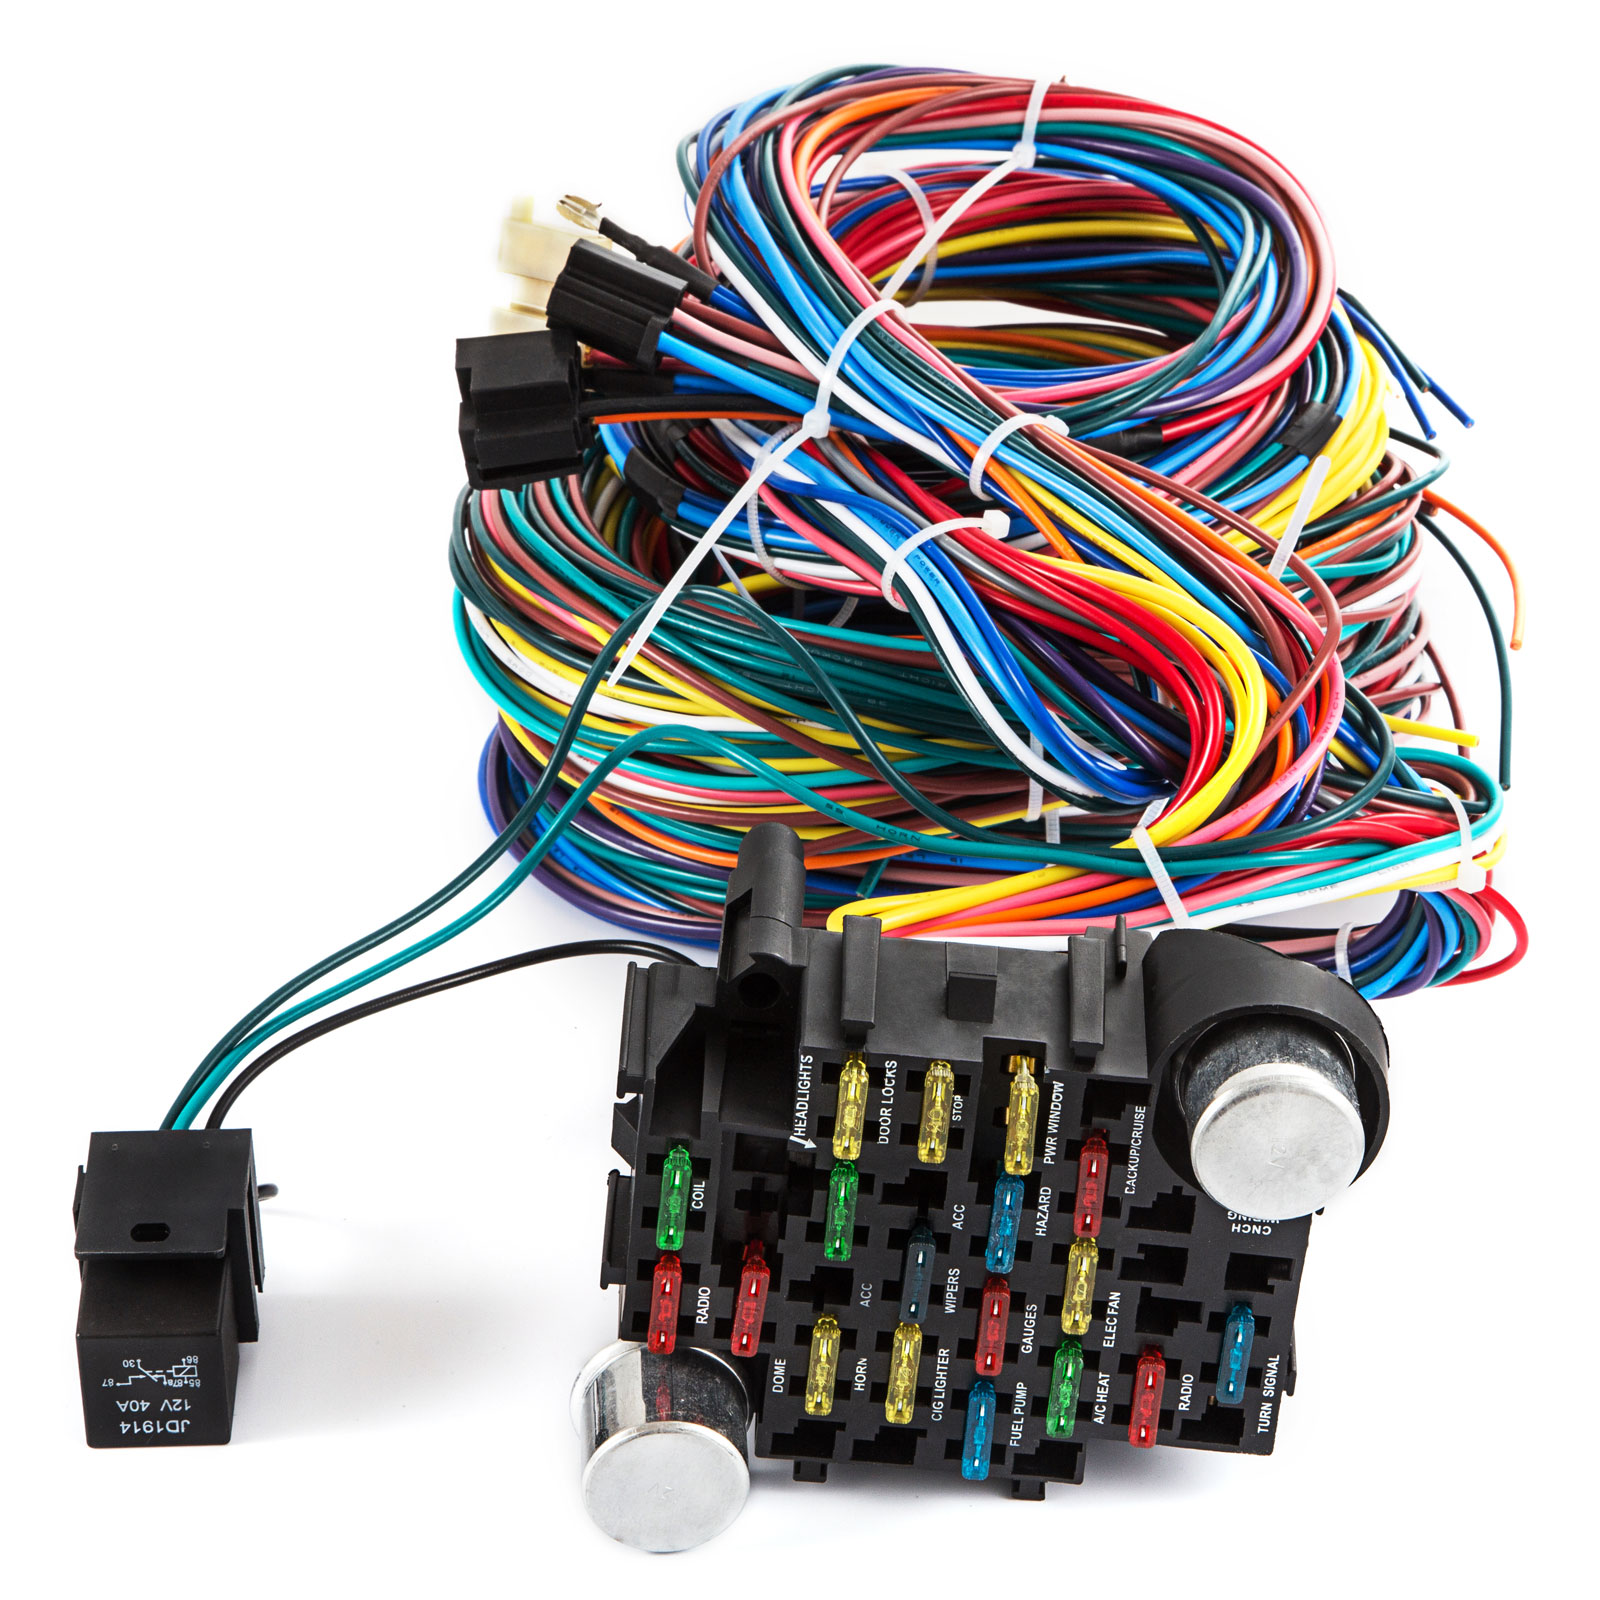 New 21 Circuit Wiring Harness Fit Chevy Mopar Ford Hotrods Universal Extra Wire 832419277434